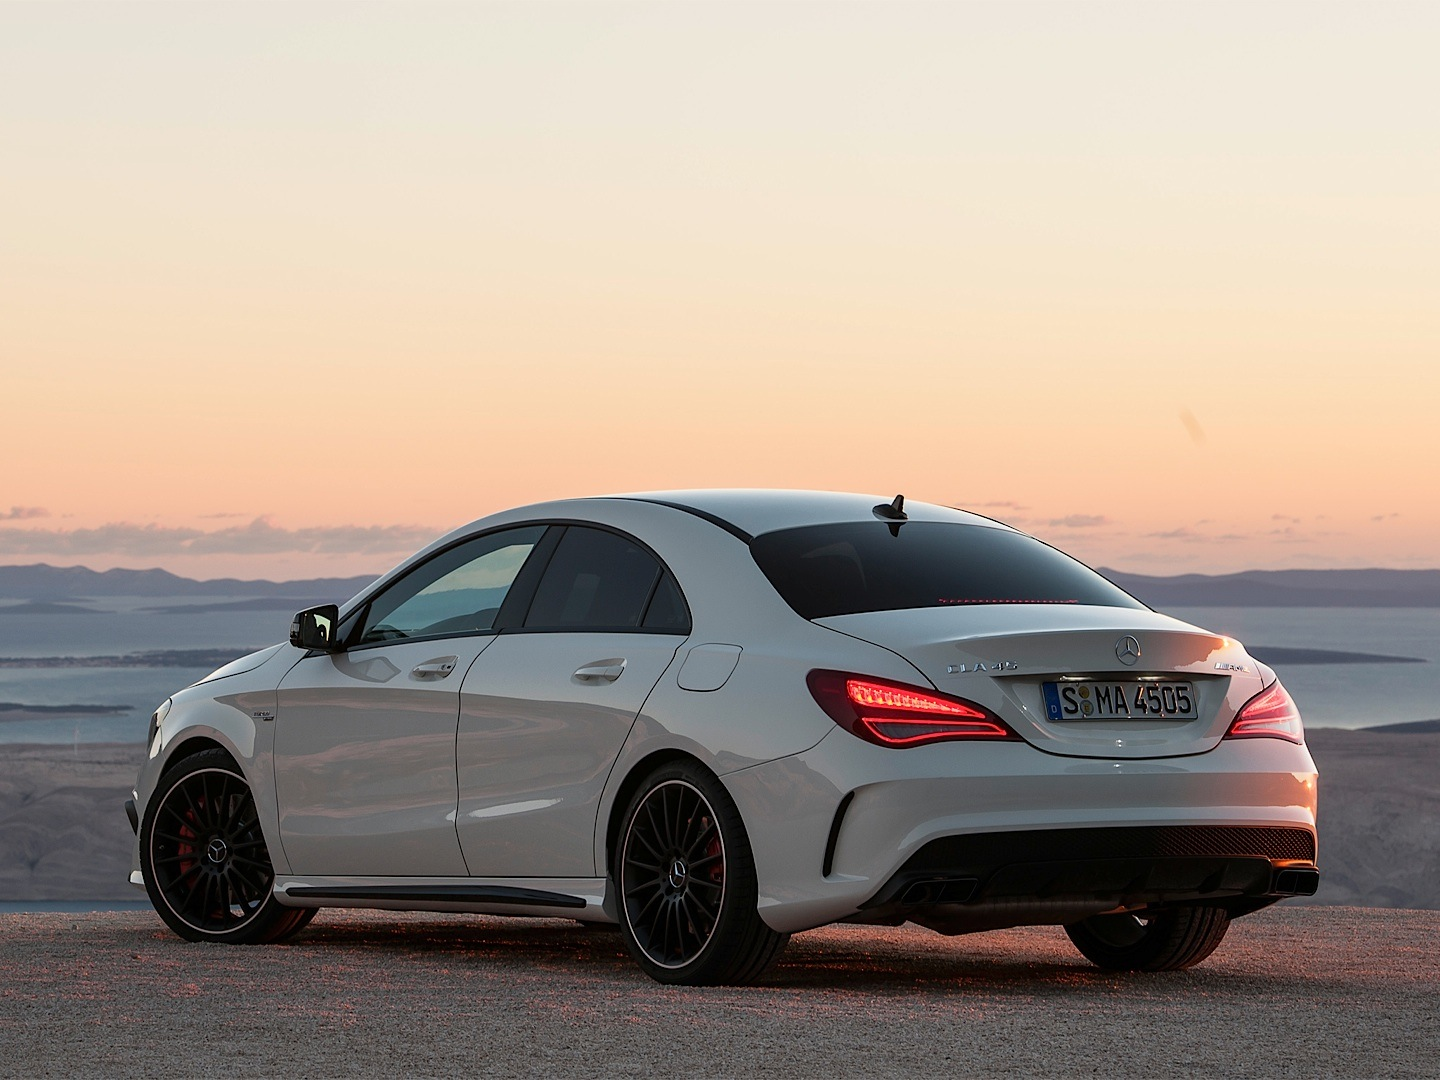 Mercedes benz cla 45 amg driven by vadimauto autoevolution for Mercedes benz video